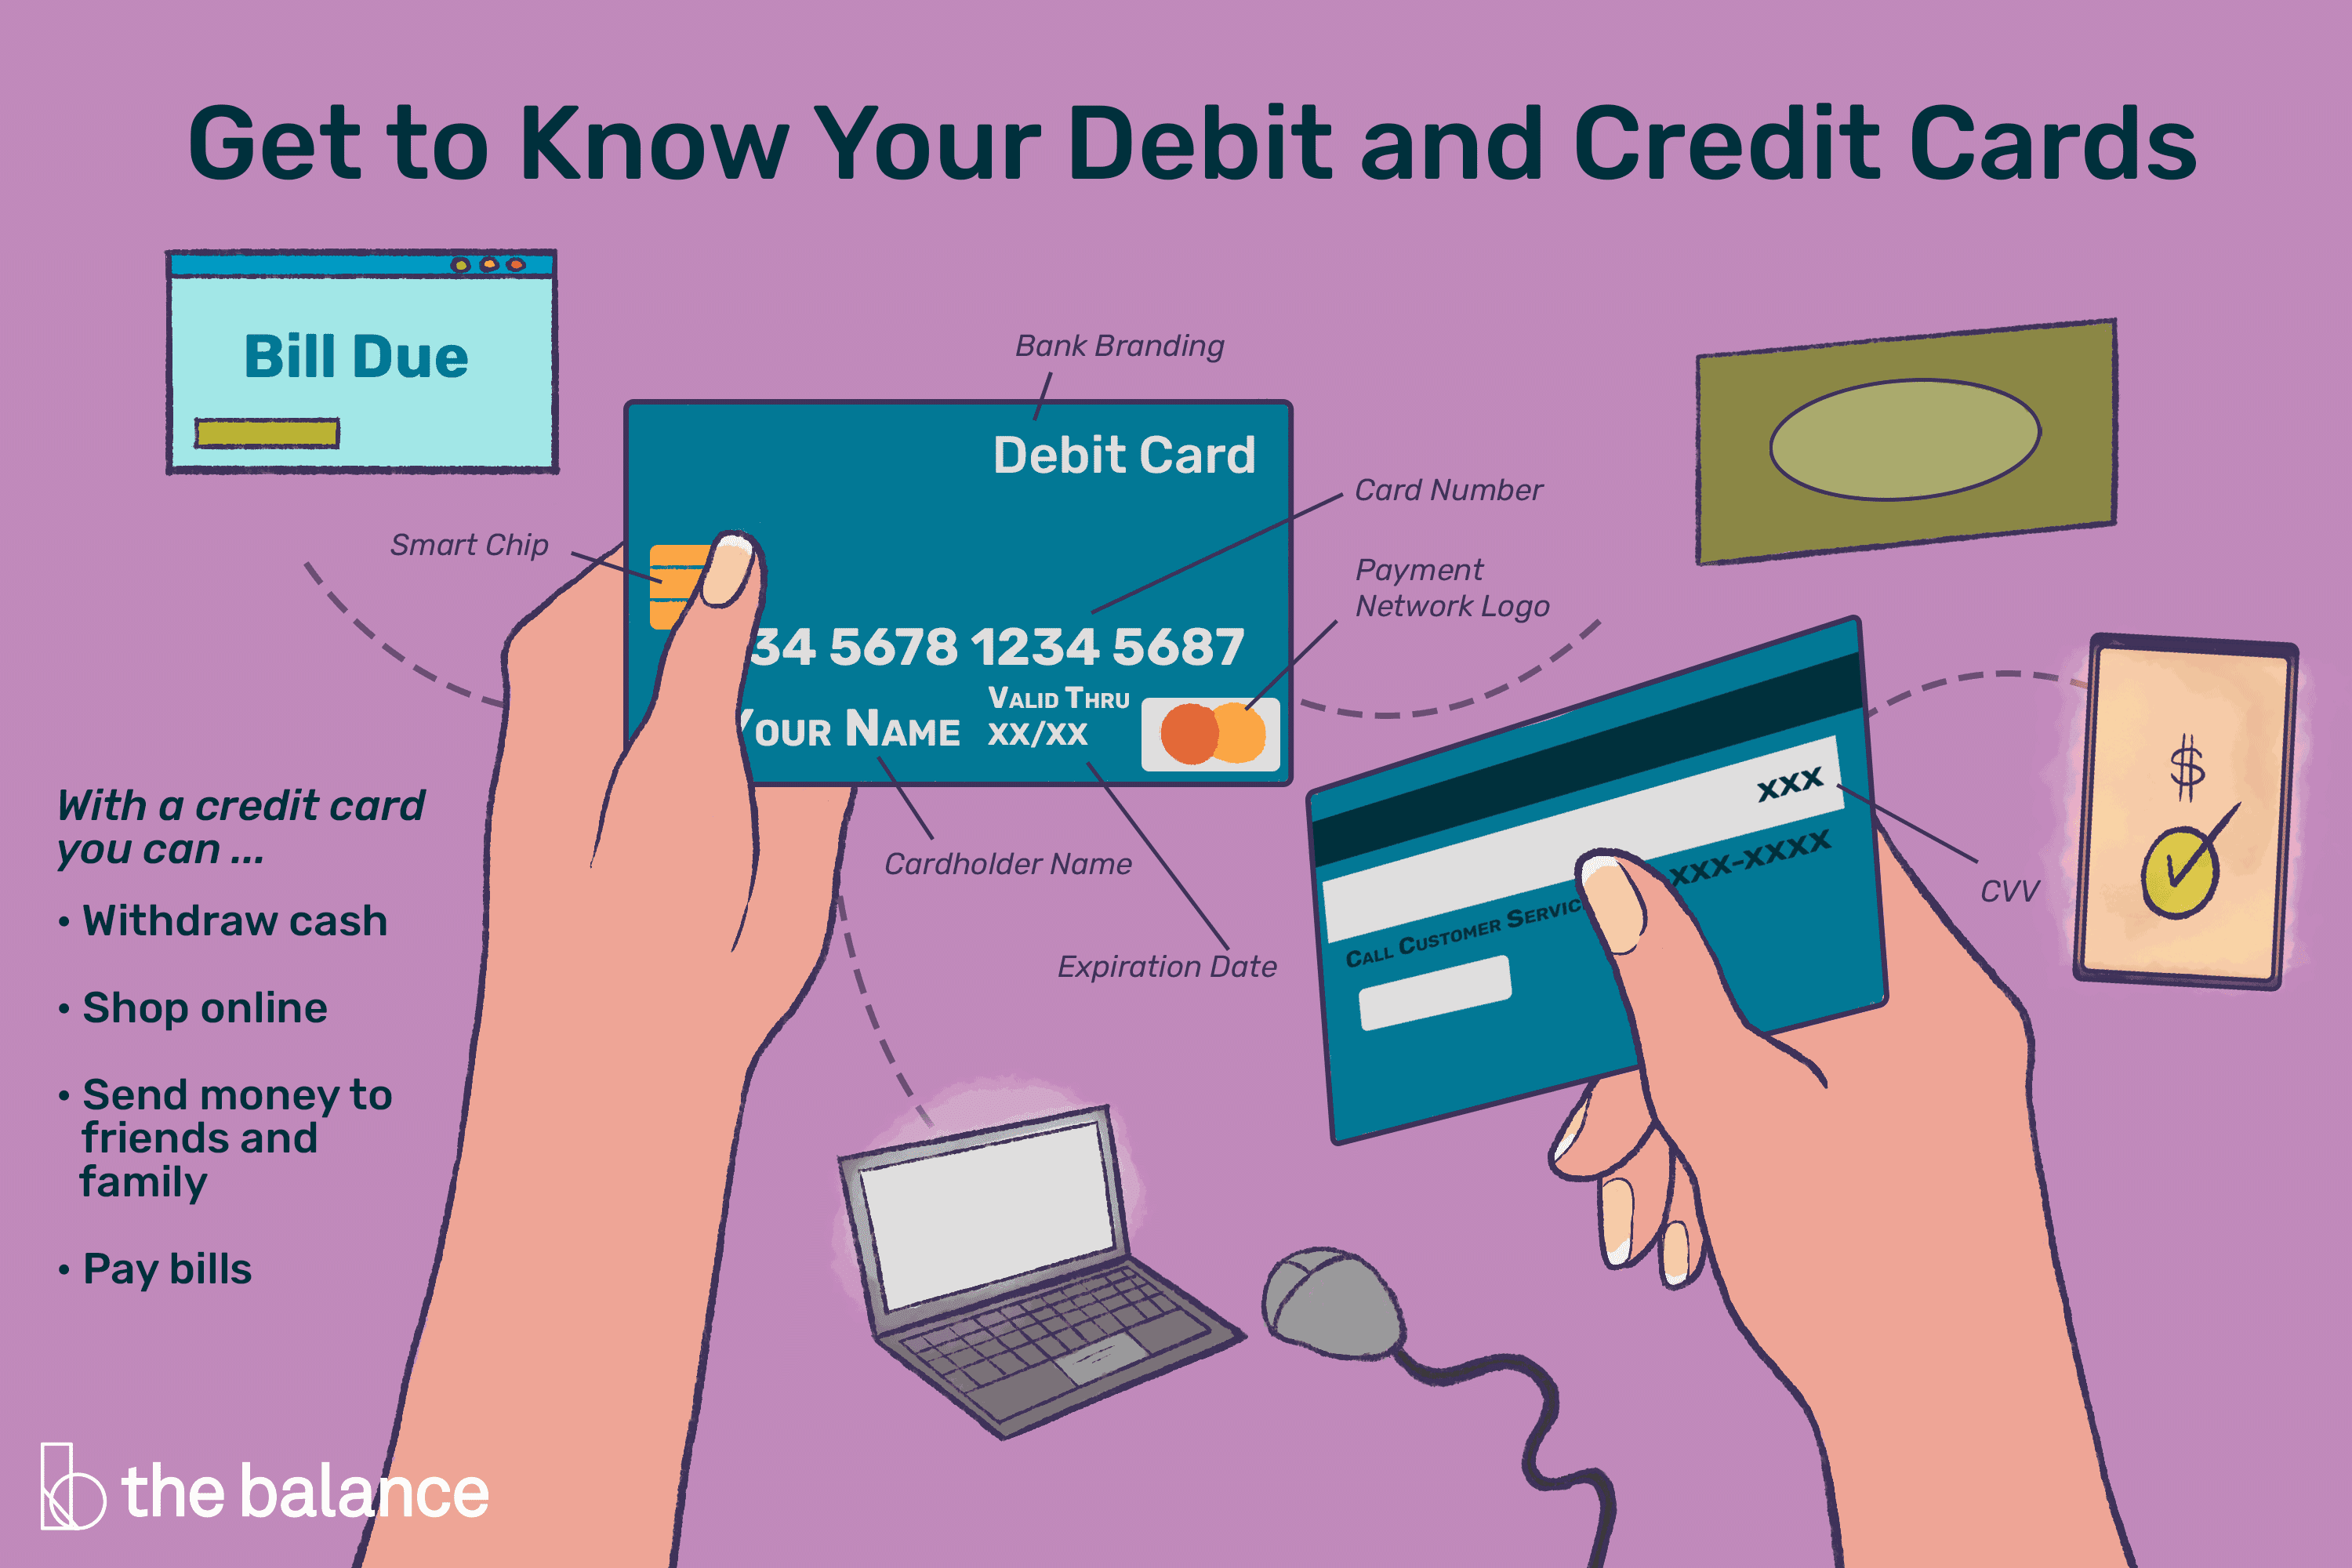 Get To Know the Parts of a Debit or Credit Card